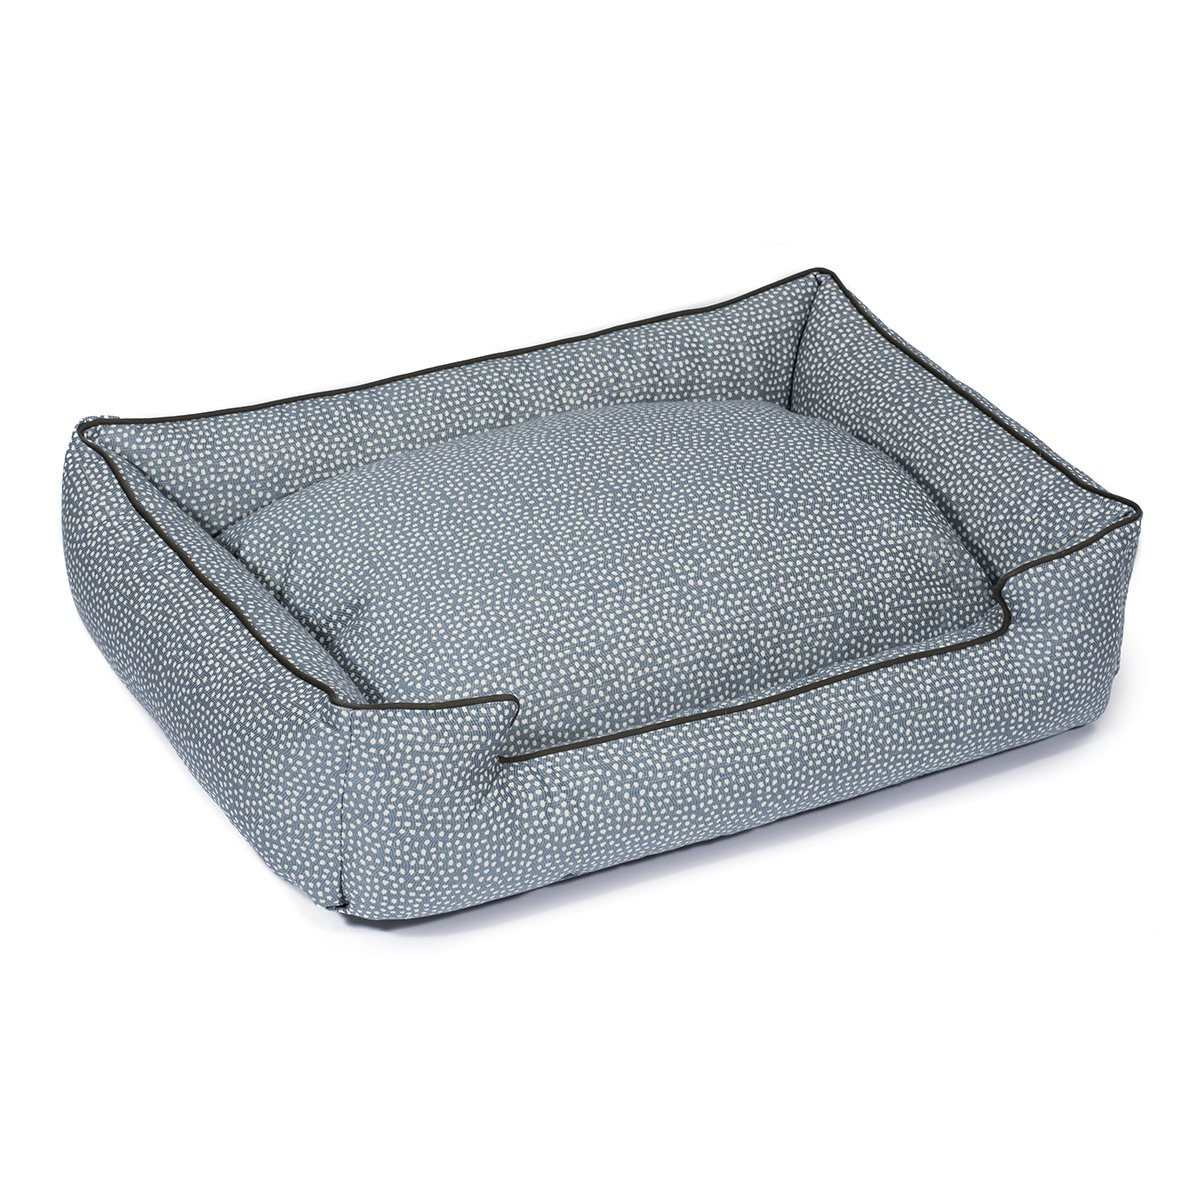 Jax and Bones 39 x 32 x 10'' Premium Cotton Blend Lounge Dog Bed, Large, Flicker Cornflower